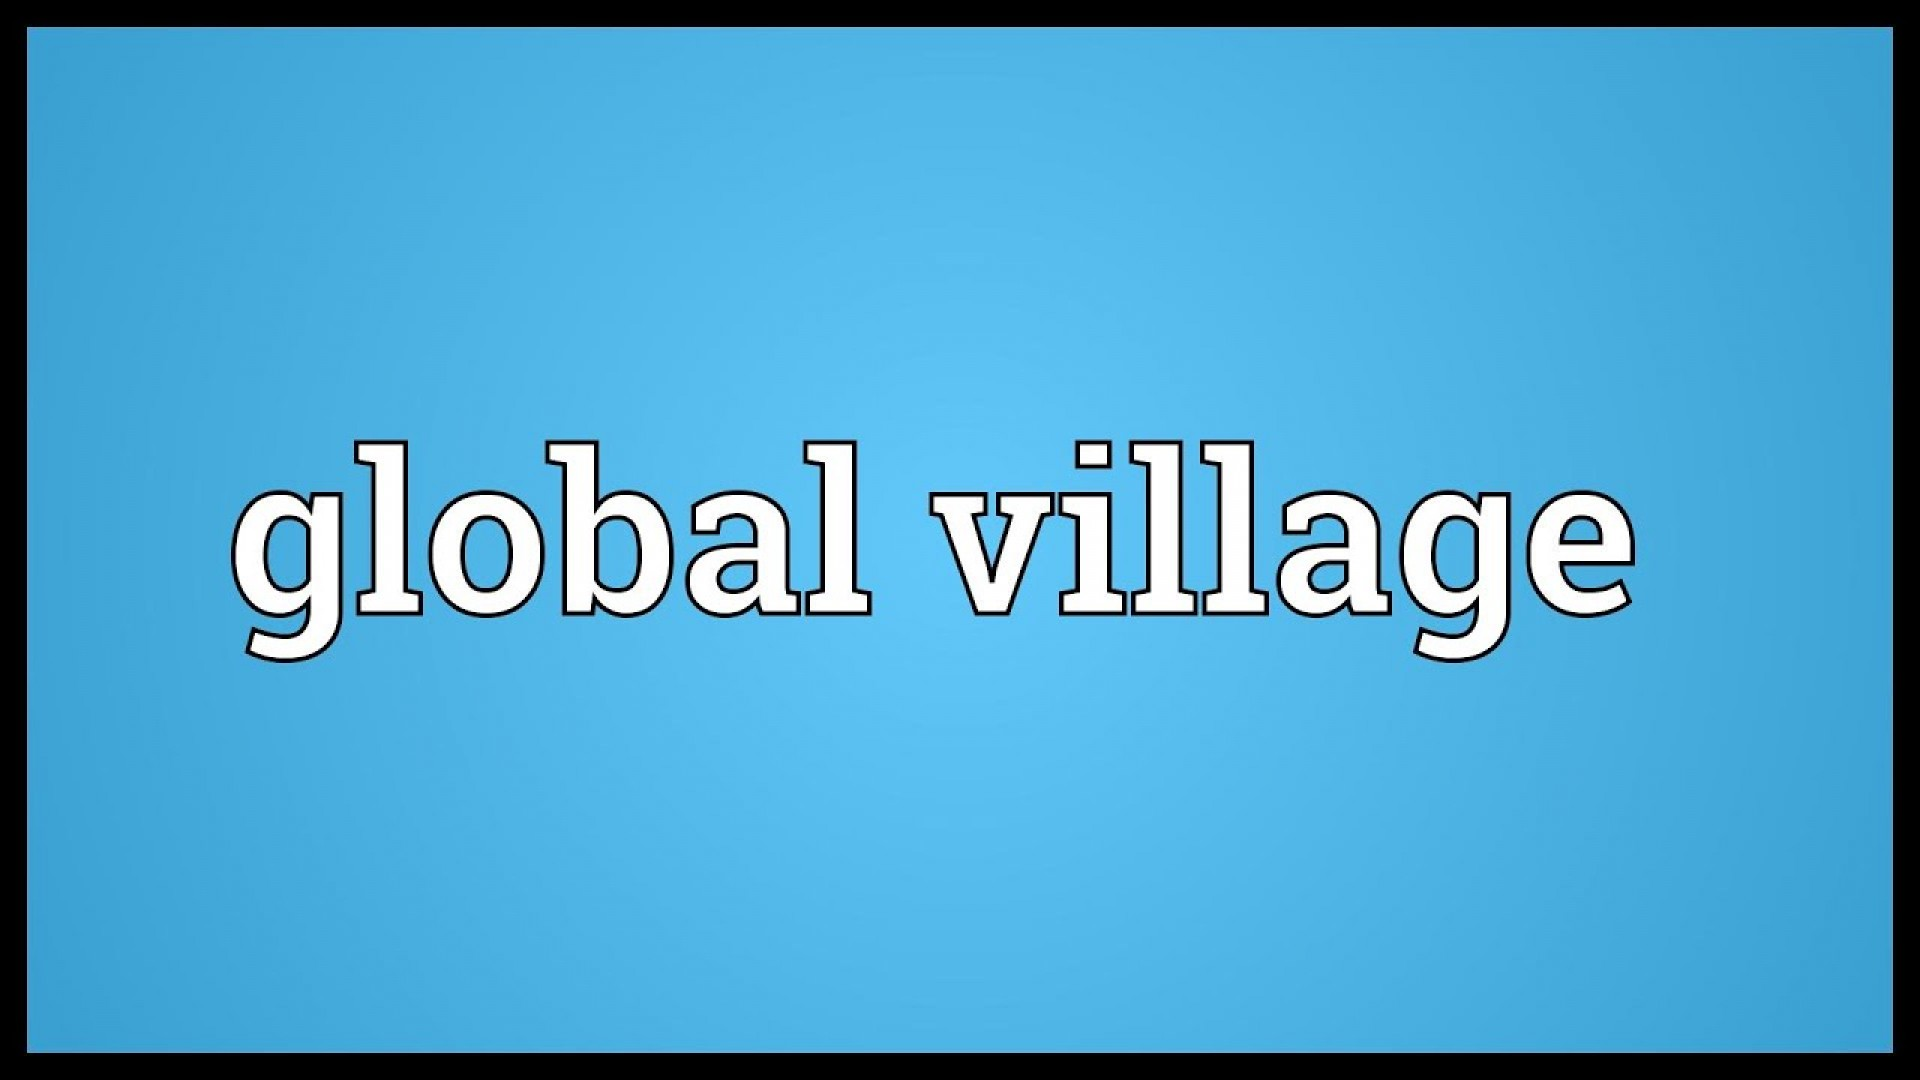 017 The World Is Global Village Essay Maxresdefault Impressive A Big Has Become Today's 1920